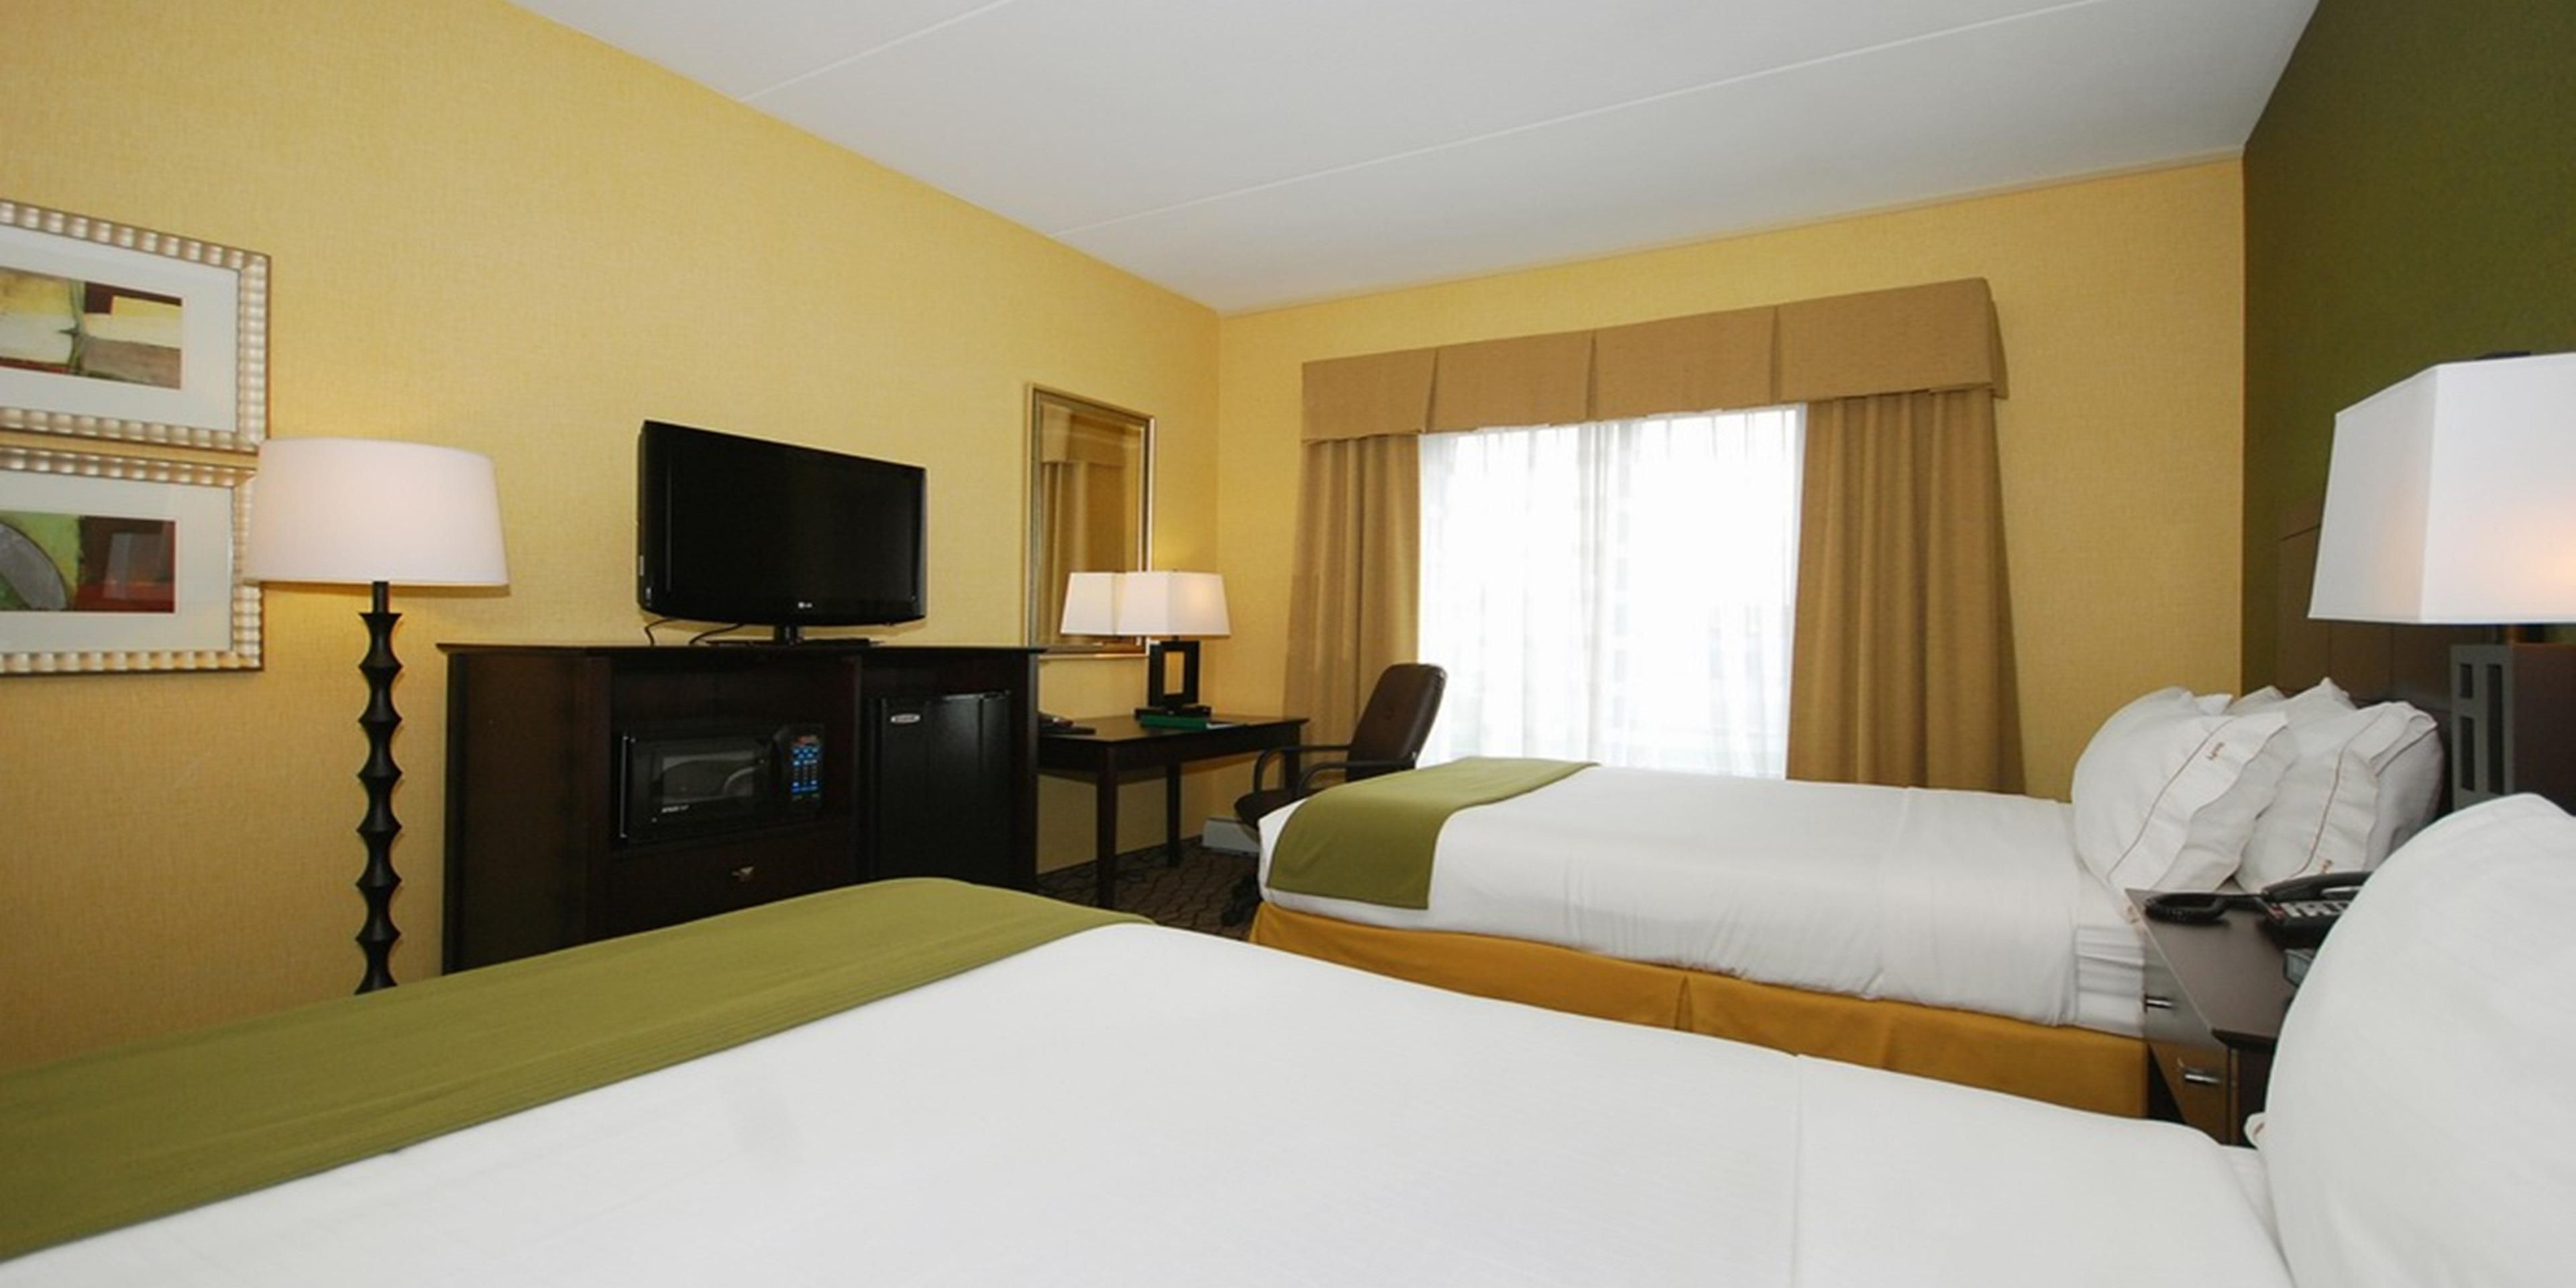 Holiday Inn Express And Suites Kittanning 5251535842 2x1